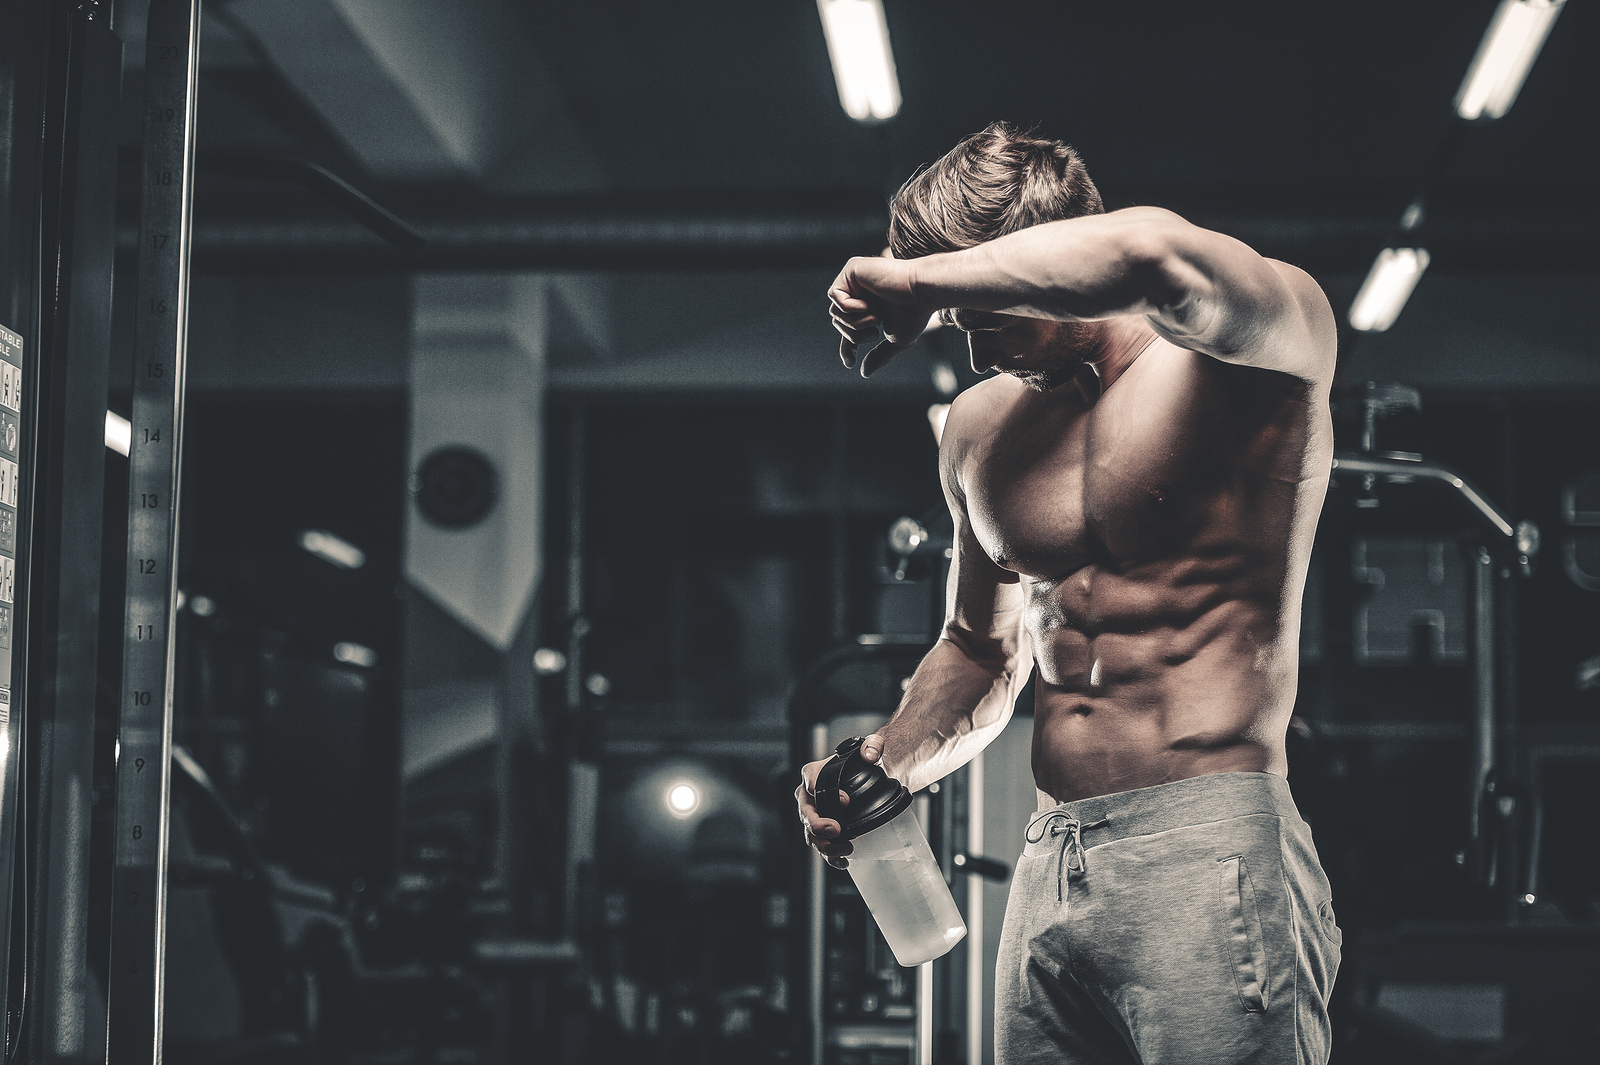 Man training to build muscle fast